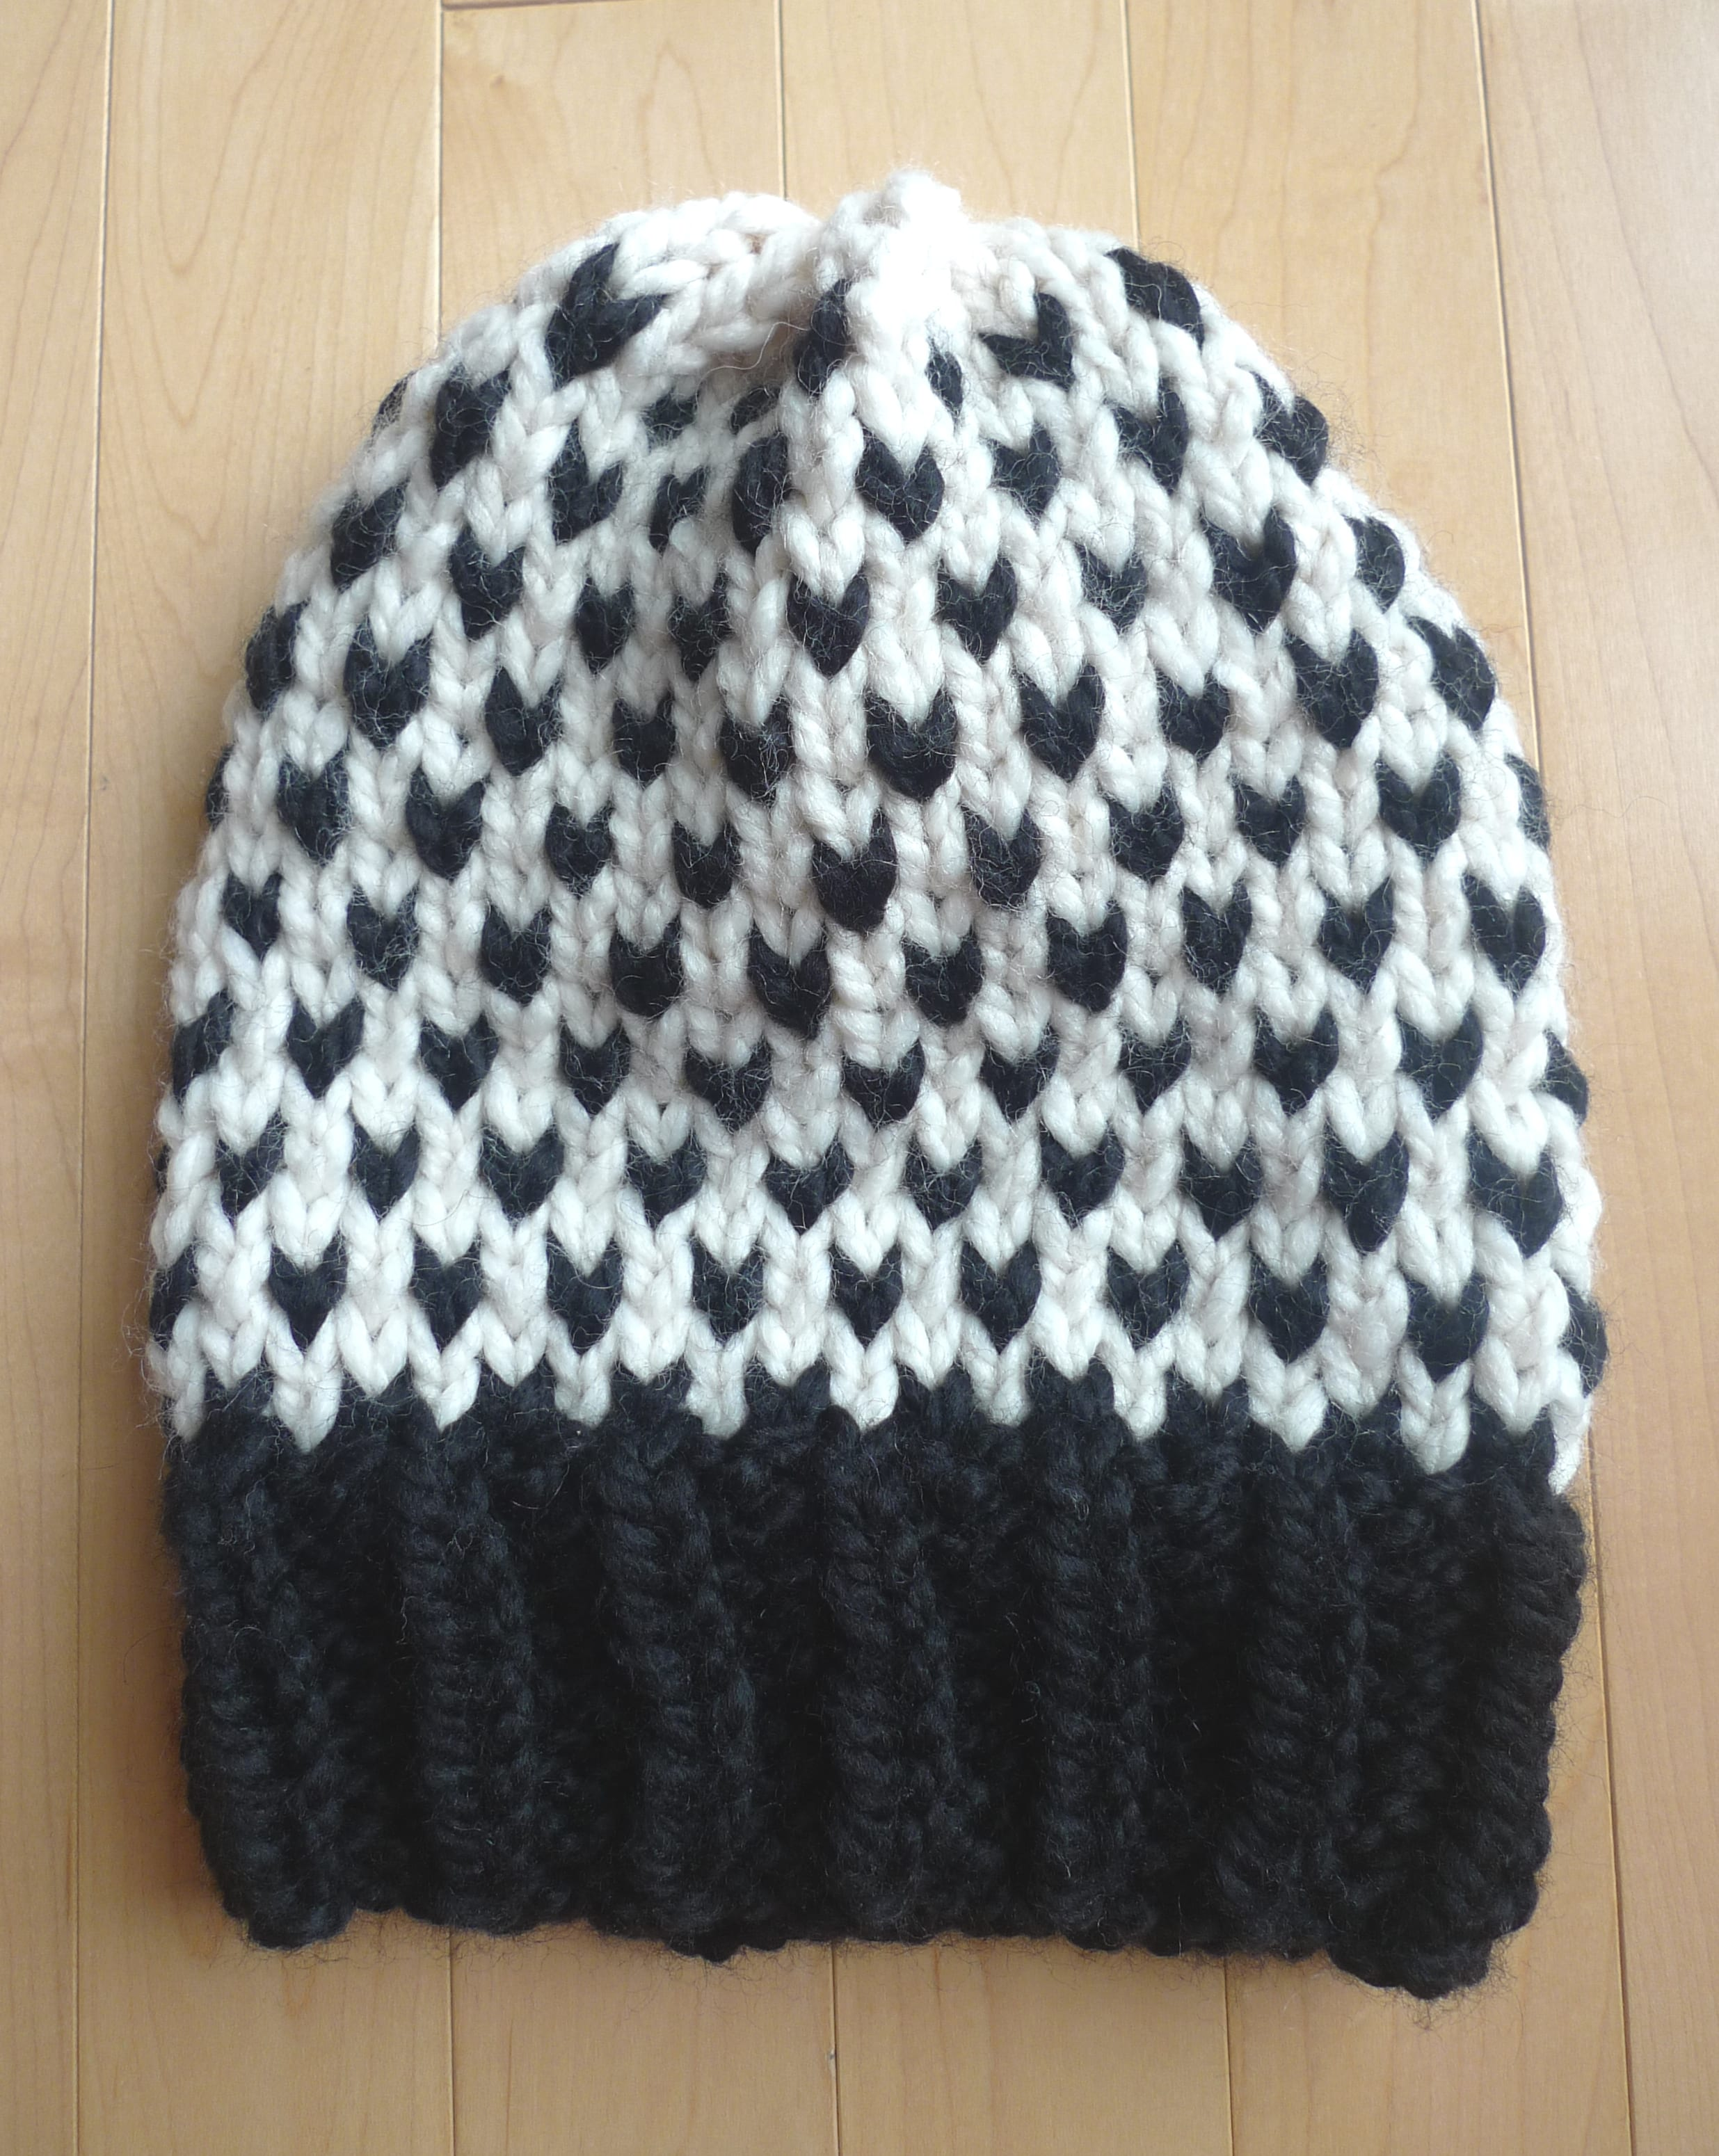 Free Fair Isle Knitting Patterns Hats : Knitted Fair Isle Hats - All About Ami